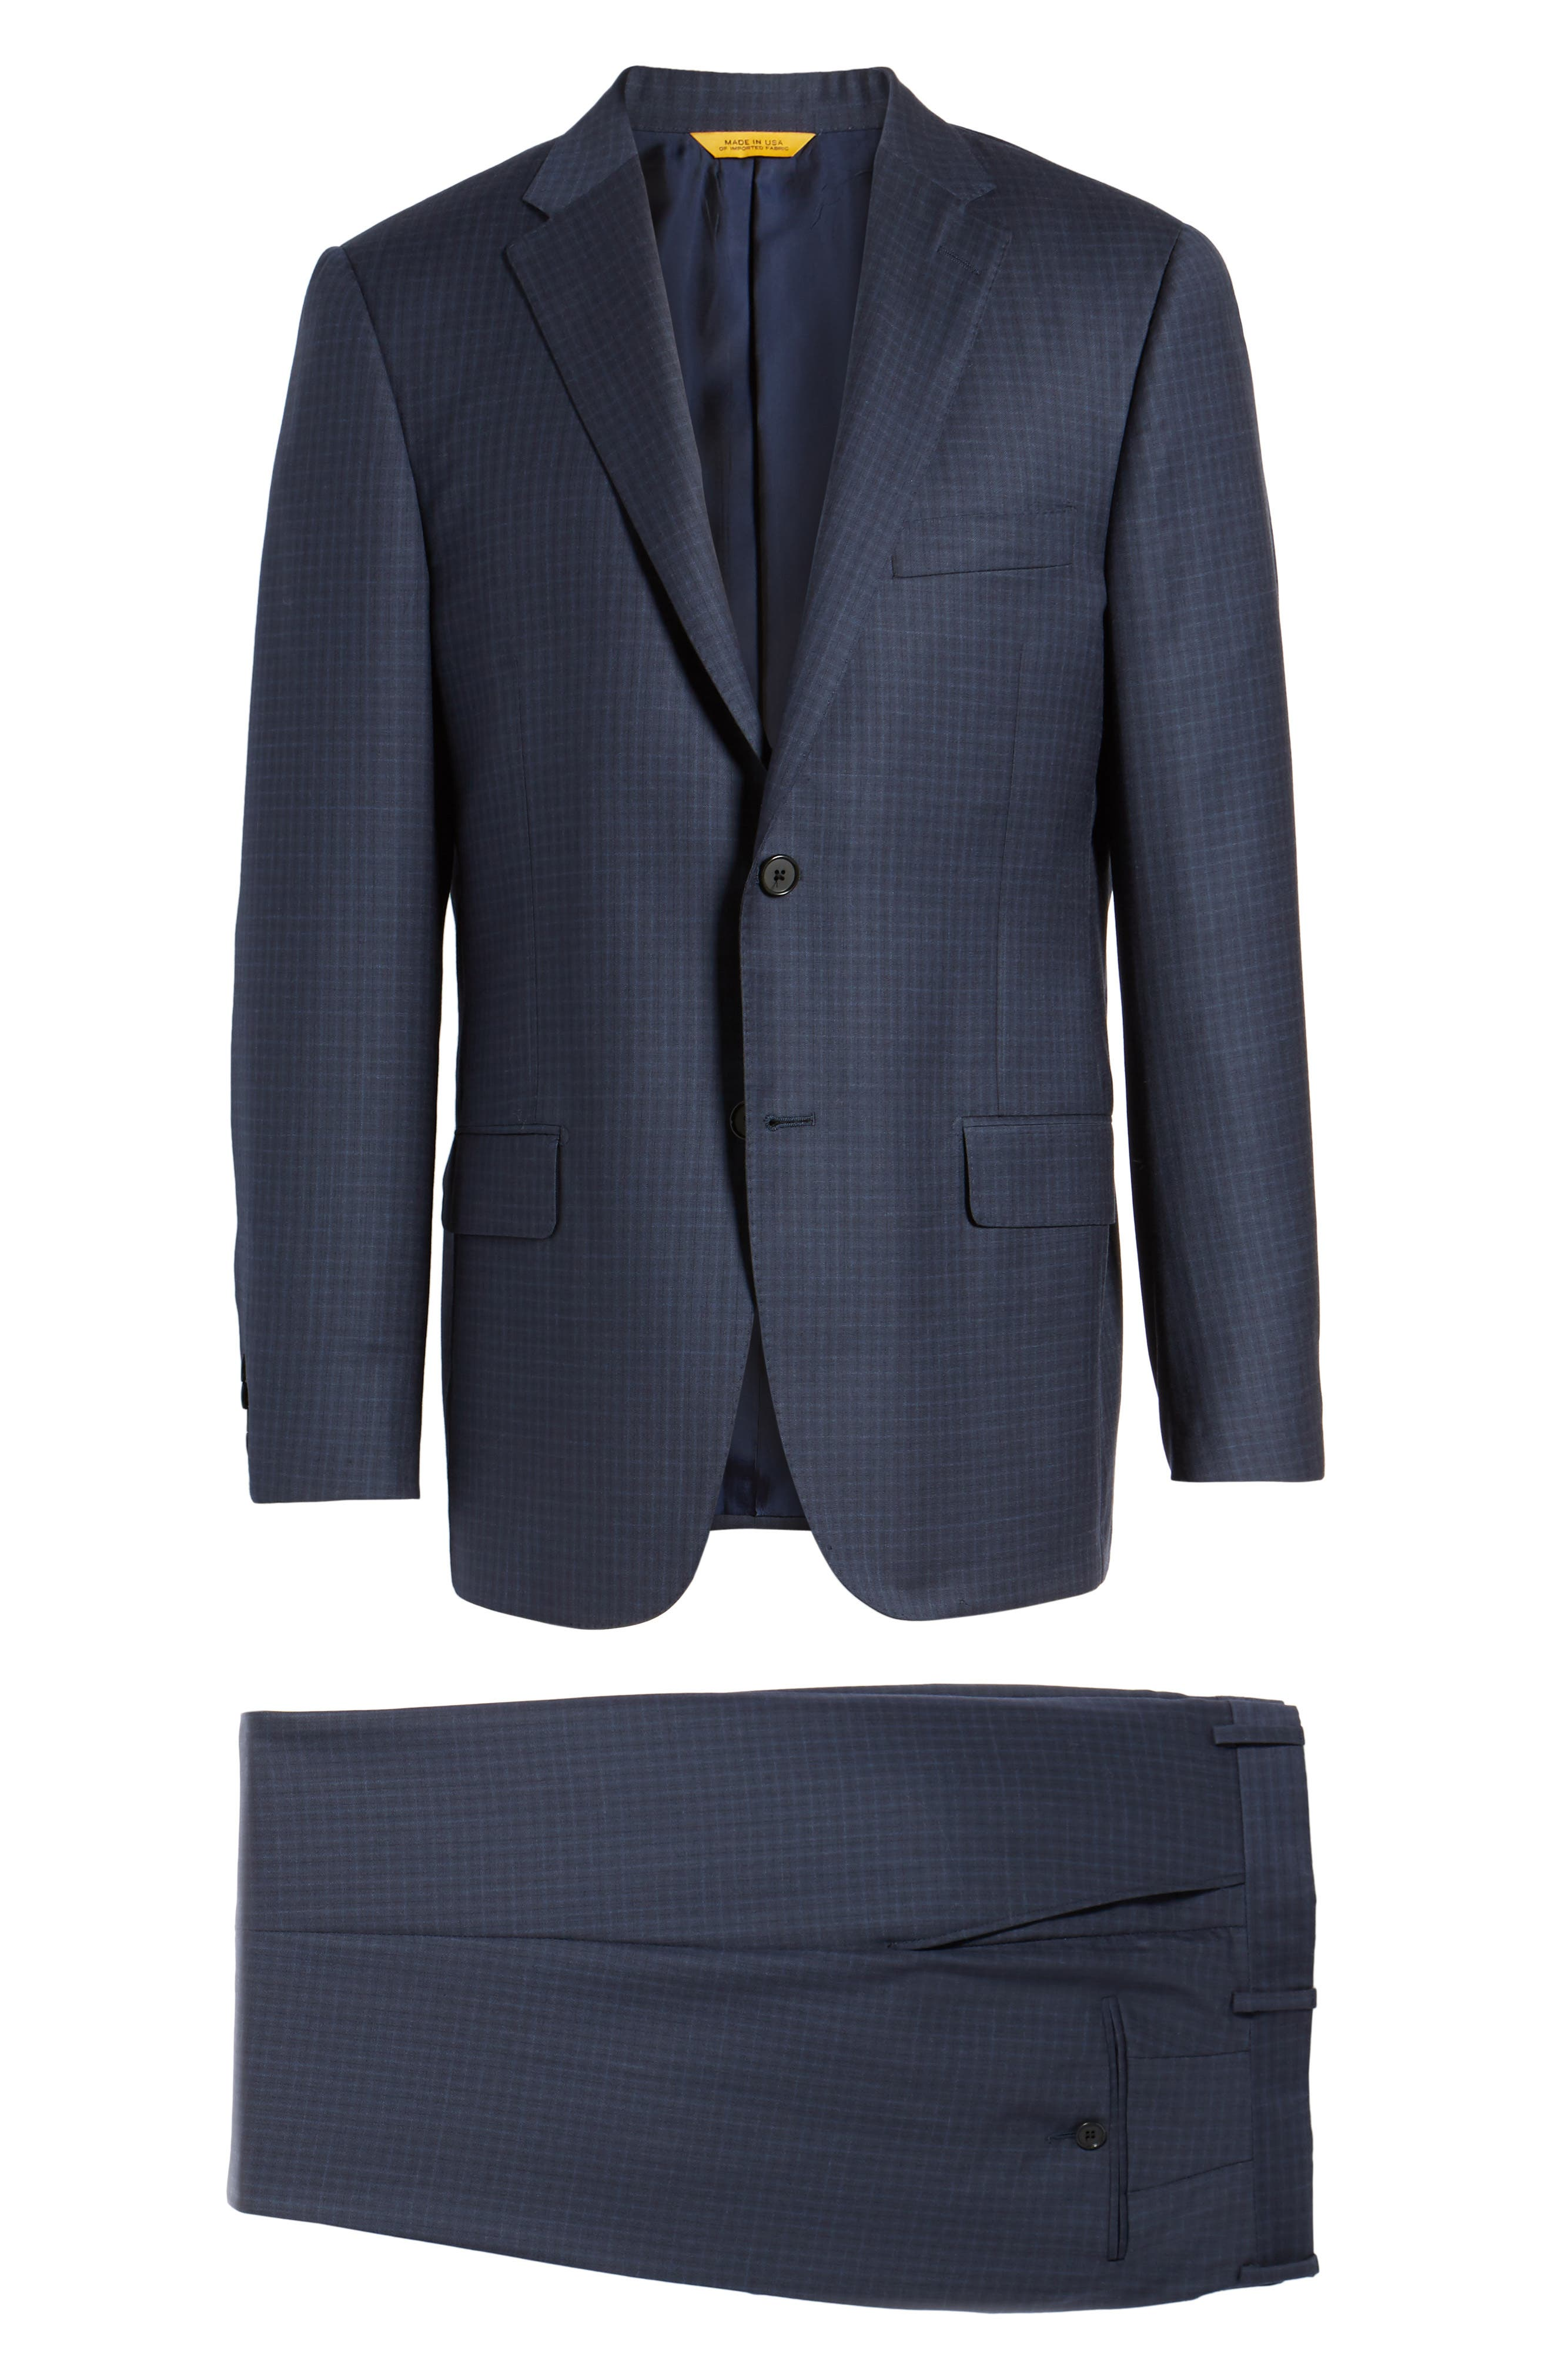 HICKEY FREEMAN,                             Classic B Fit Check Wool Suit,                             Alternate thumbnail 8, color,                             410